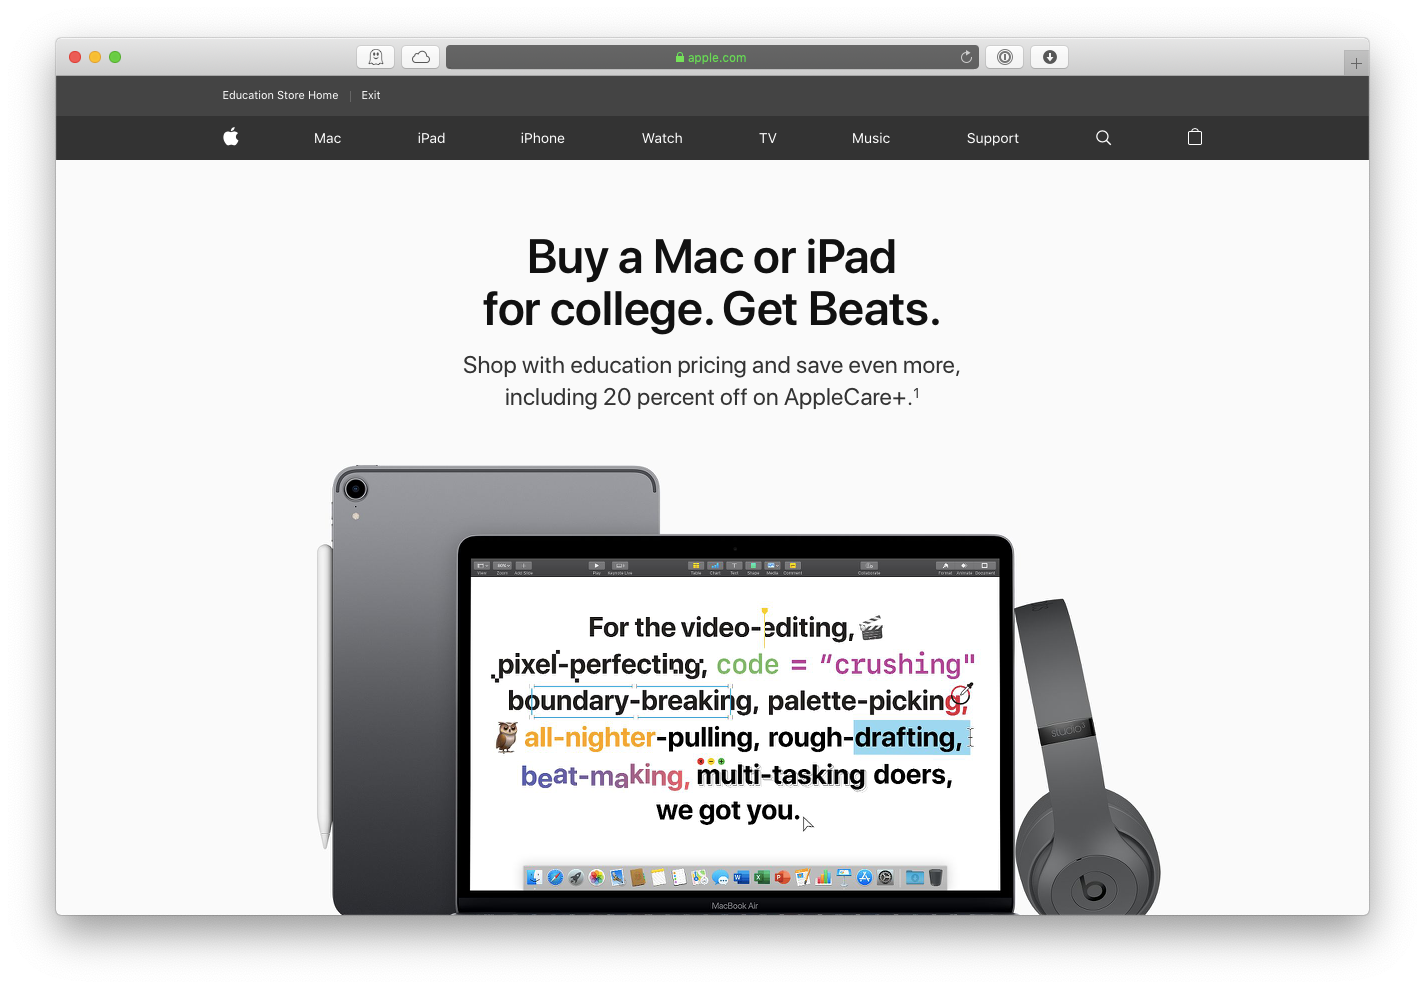 Apple discount store education